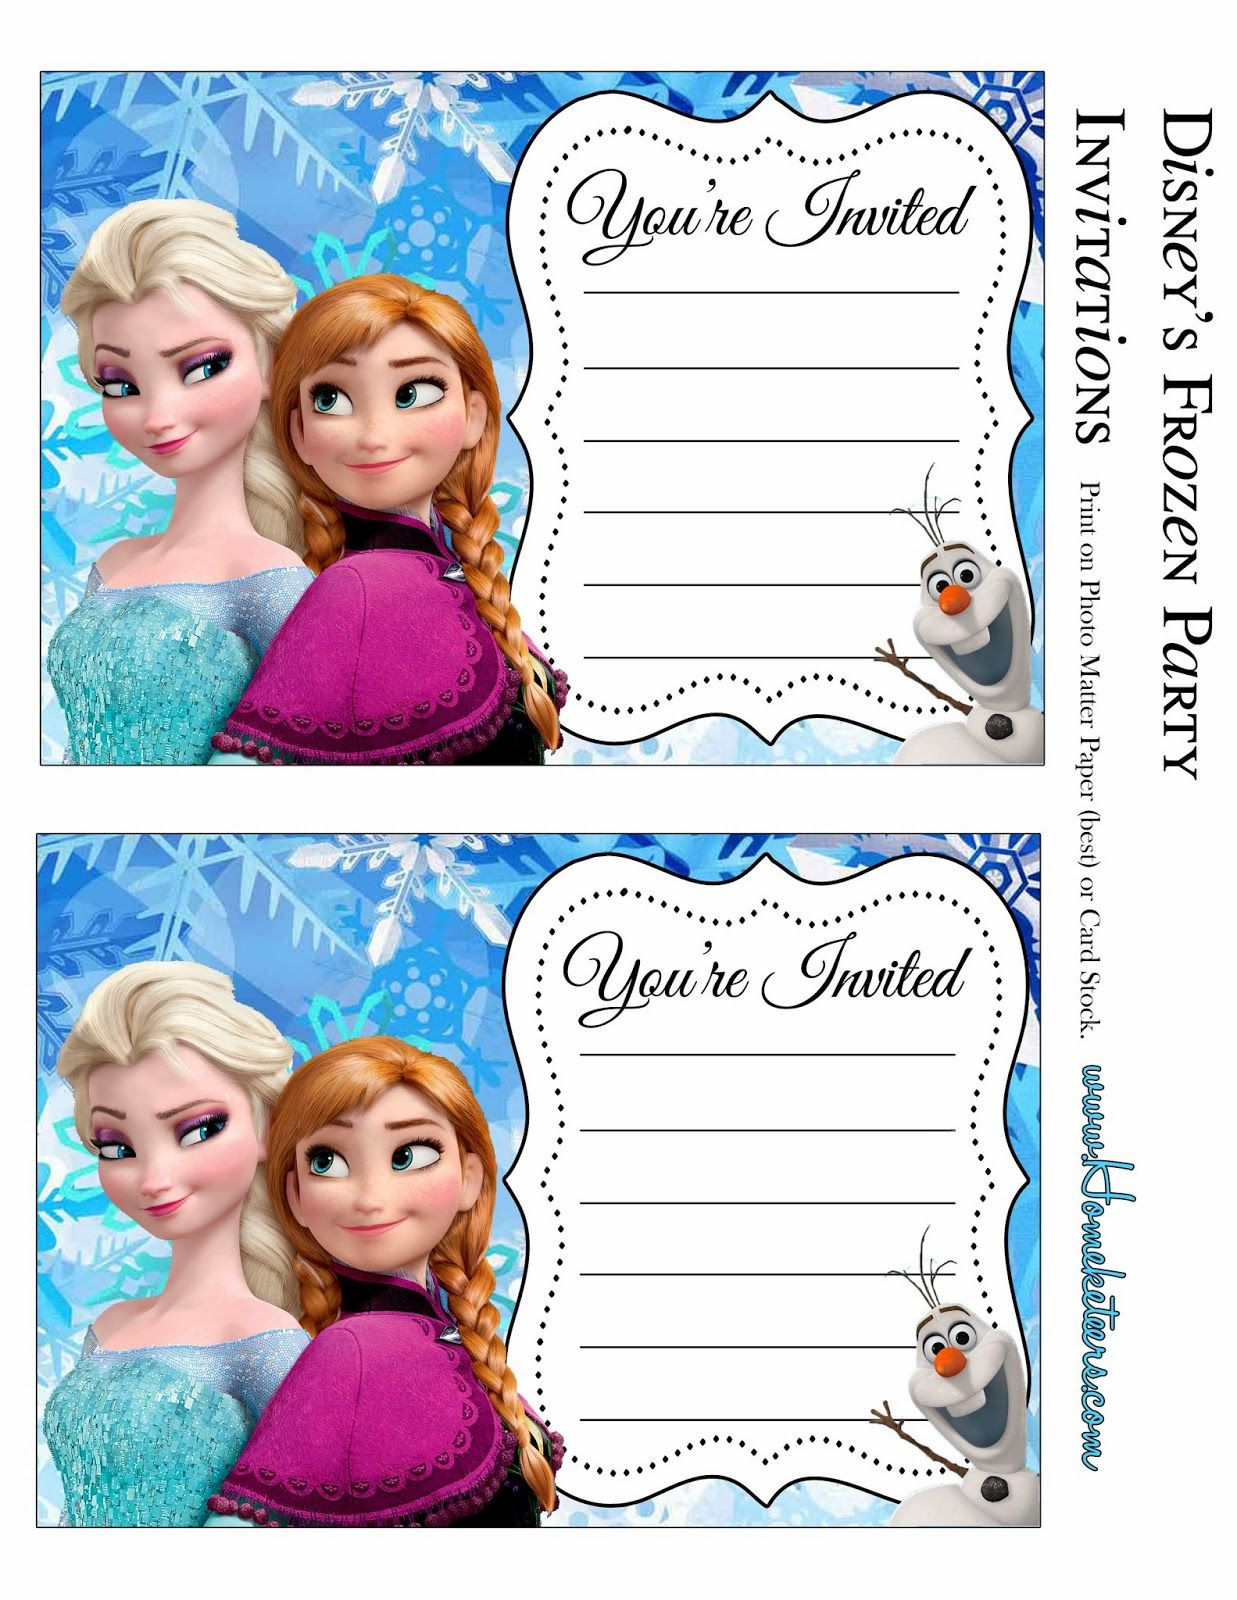 Free Frozen Invitations Printable Frozen Party Free Printable Invitations